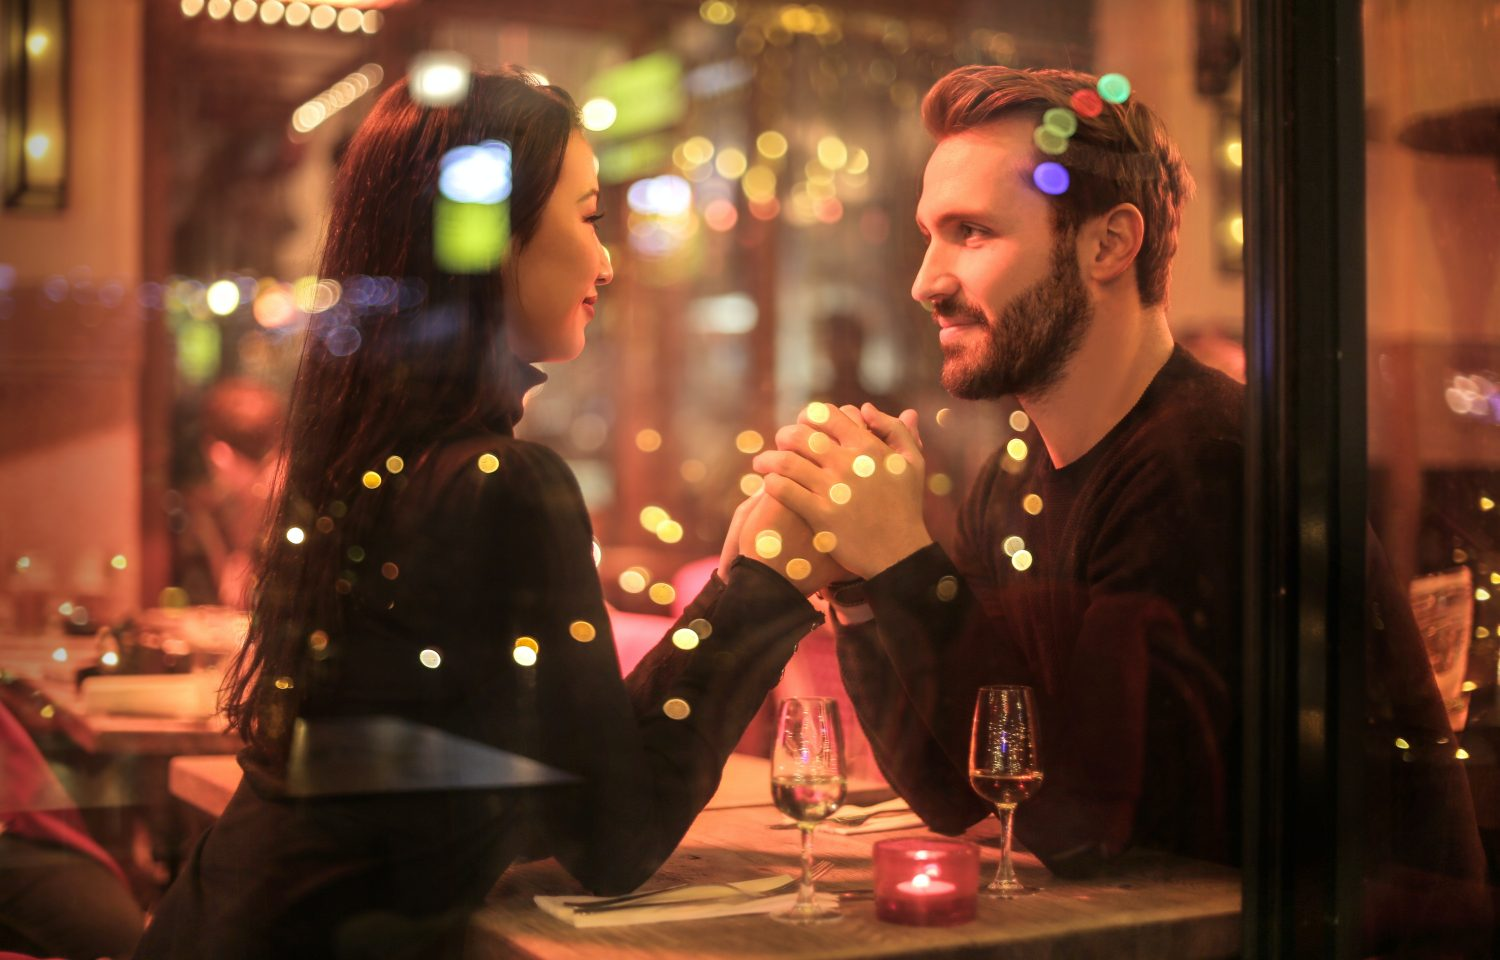 5 Reasons Why Sex On A First Date May Not Be A Good Idea